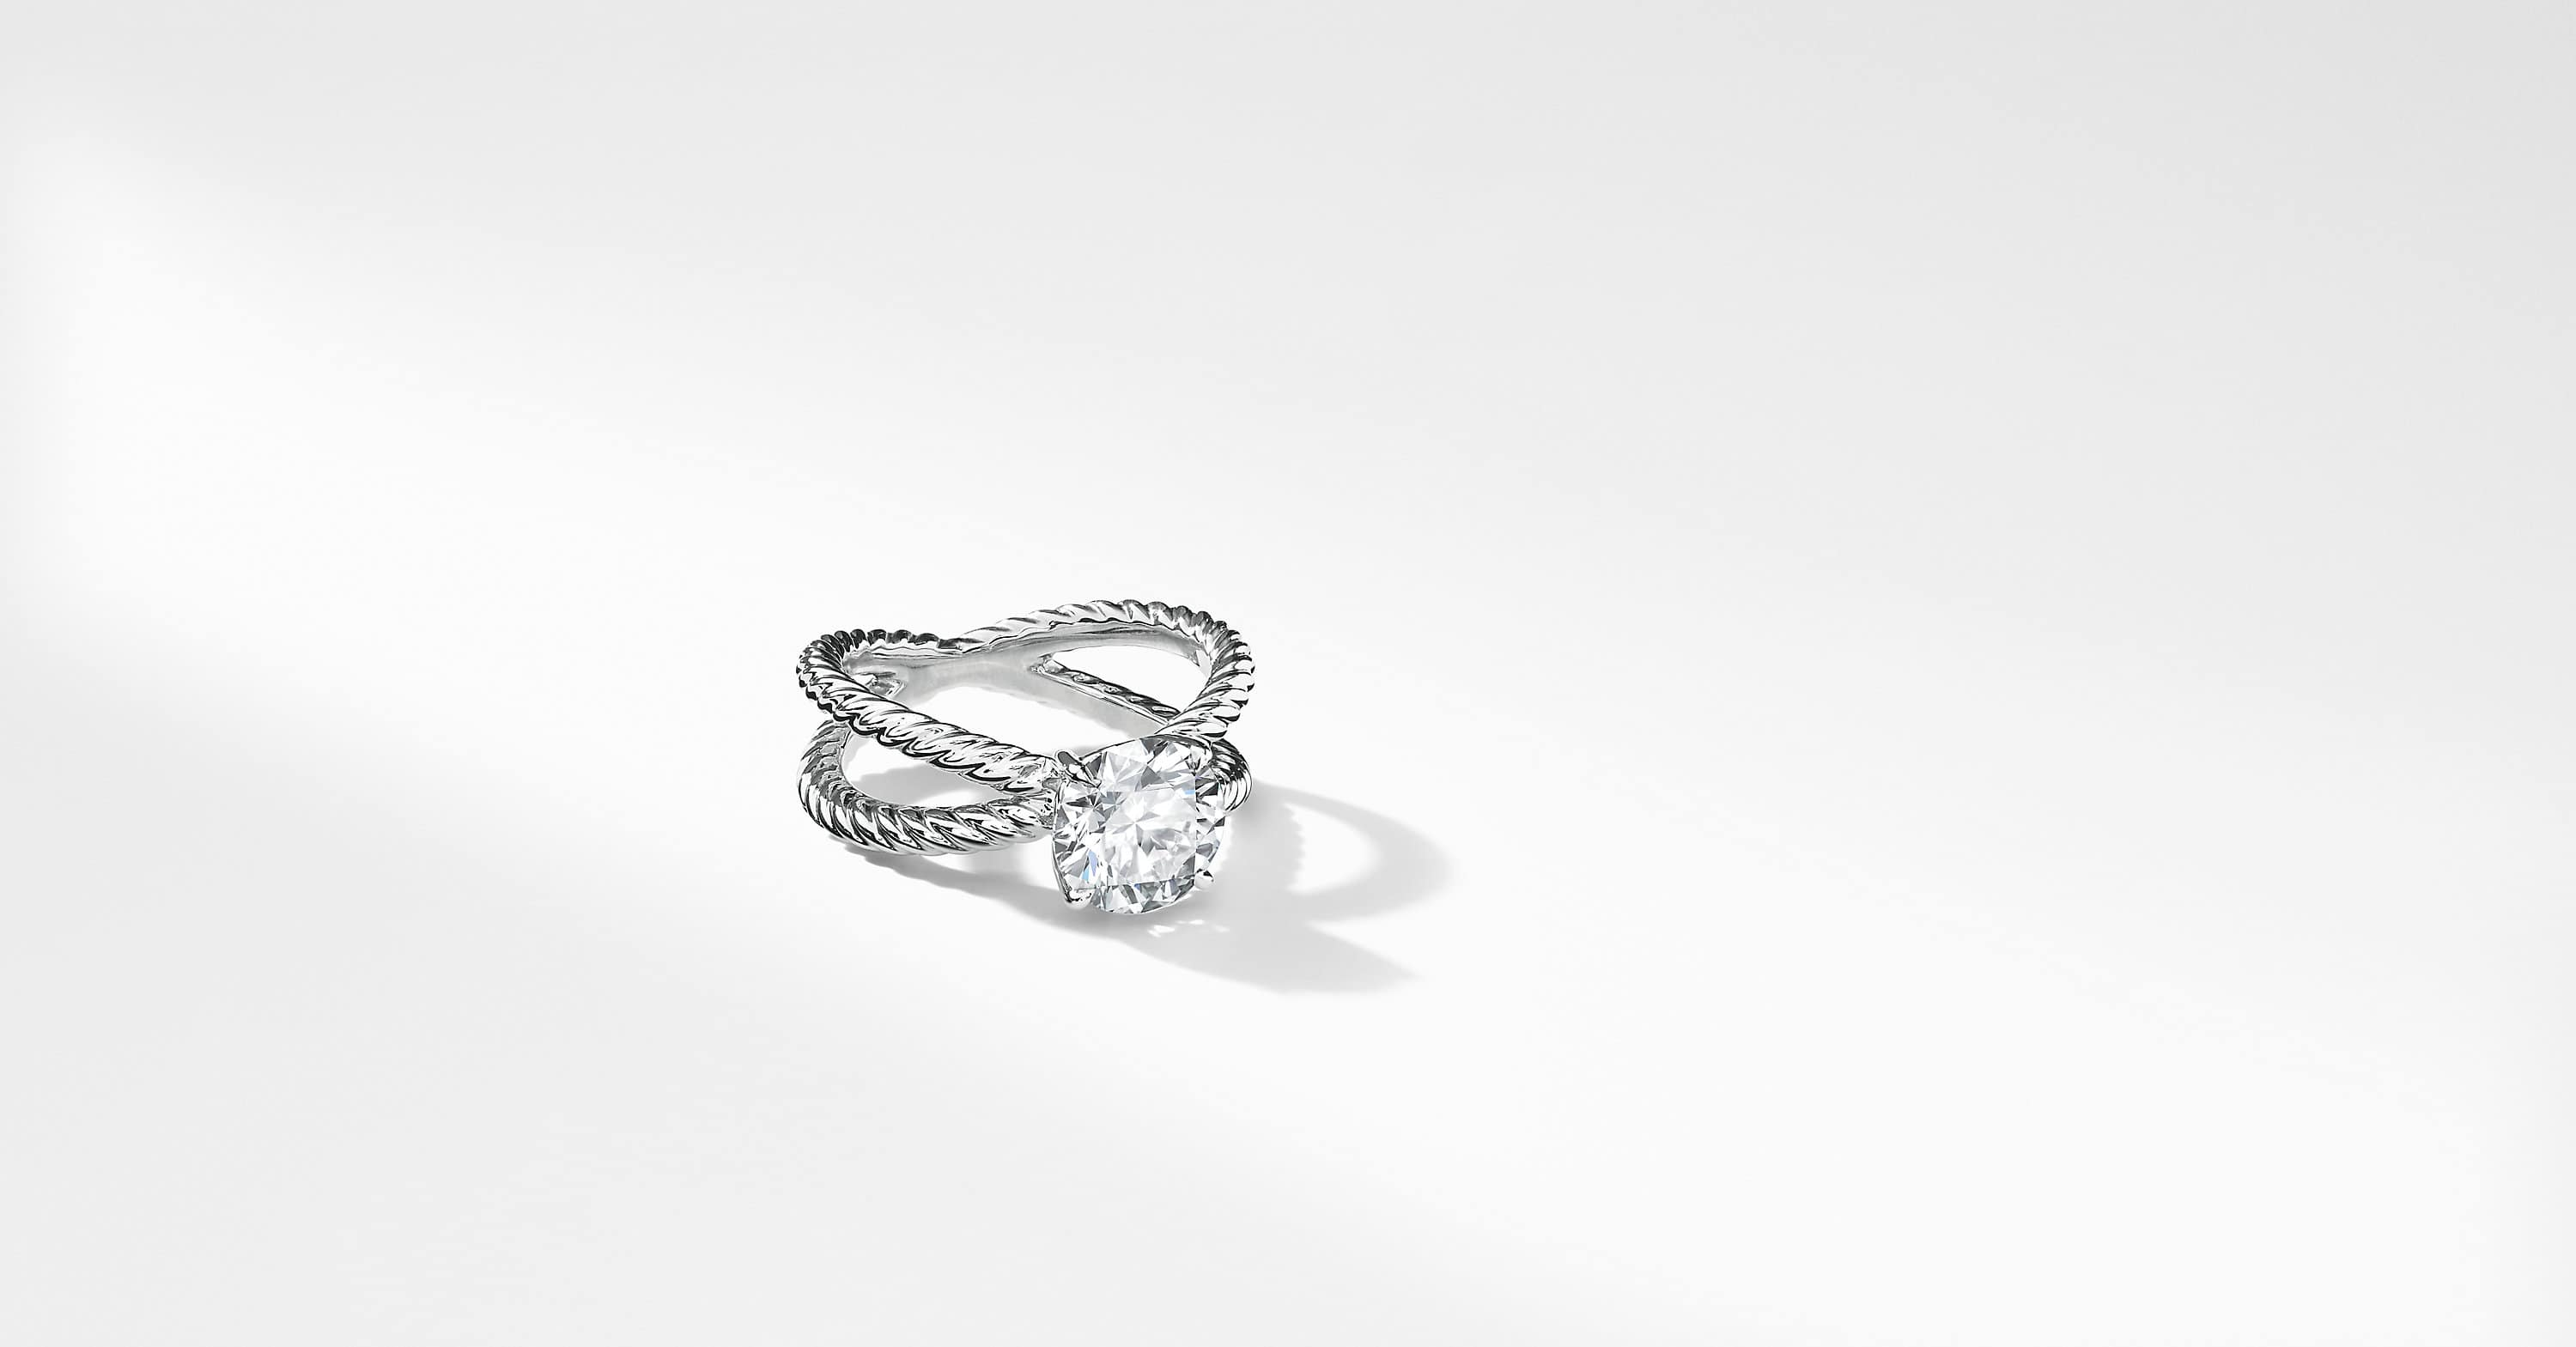 DY Crossover Engagement Ring in Platinum, Round